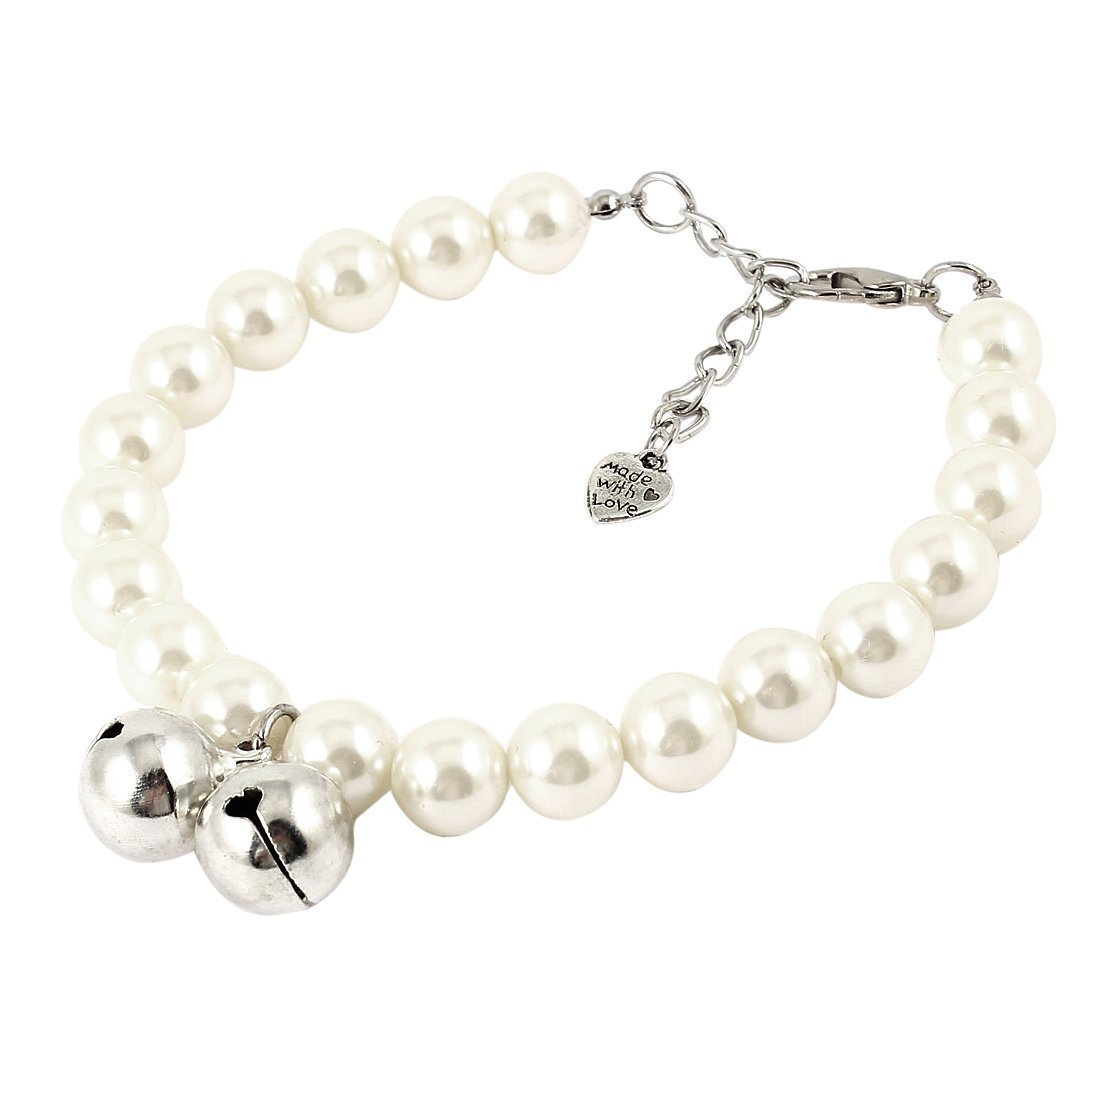 Visork Pet Imitation Pearl Necklace With Double Bell Round Beads Collar With Lobster Clasp Pet Bells Accessories For Small Pet Cat Kitten White